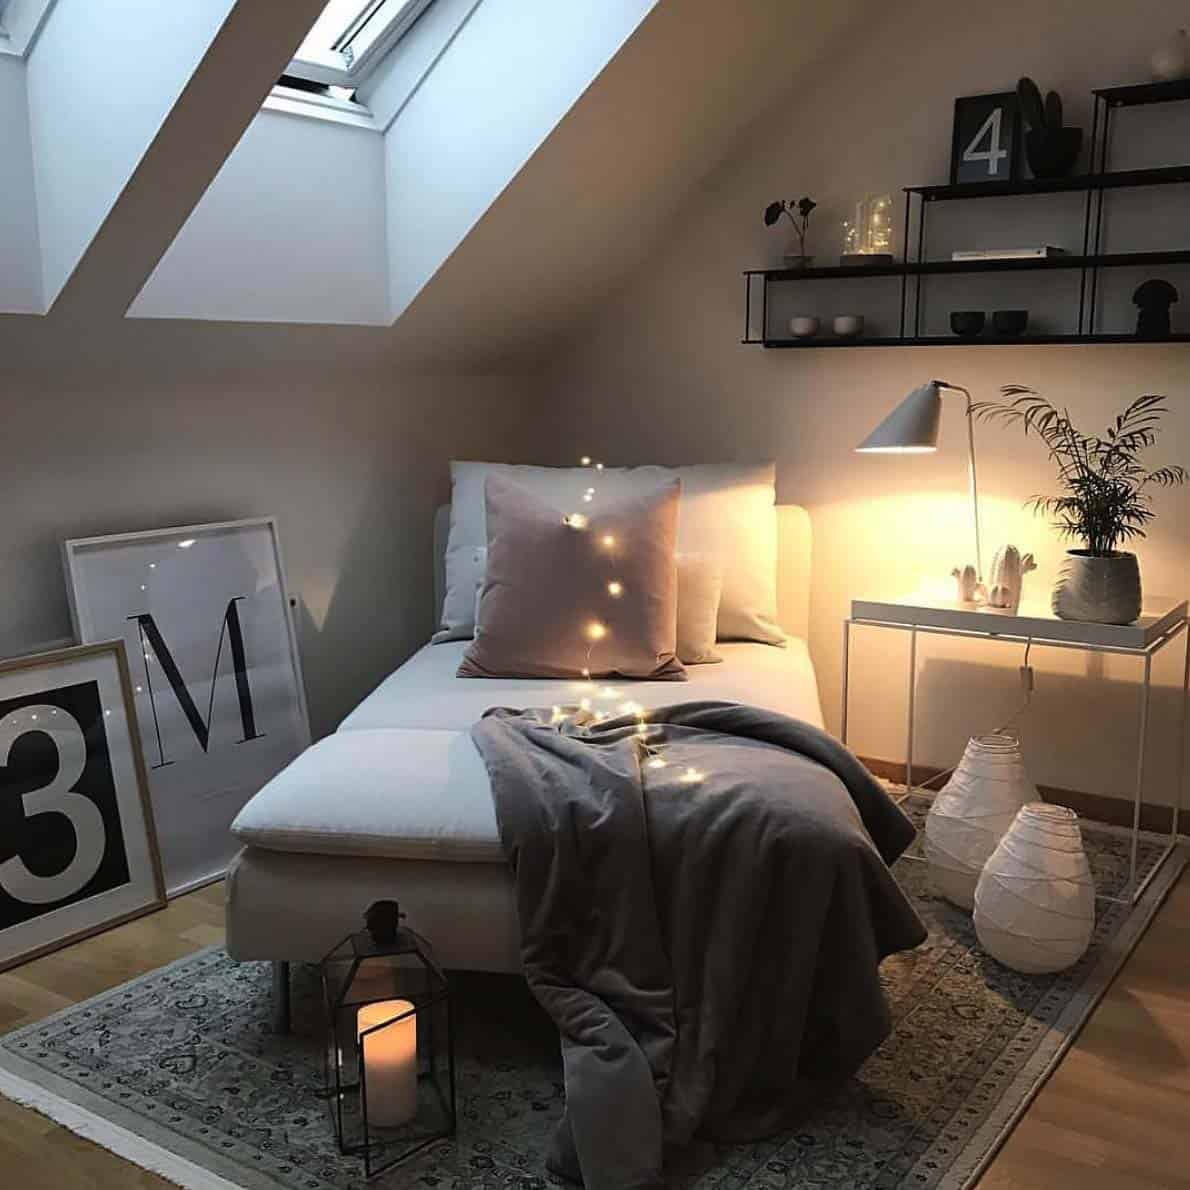 33 Ultra-cozy bedroom decorating ideas for winter warmth on Room Decor Ideas id=79635